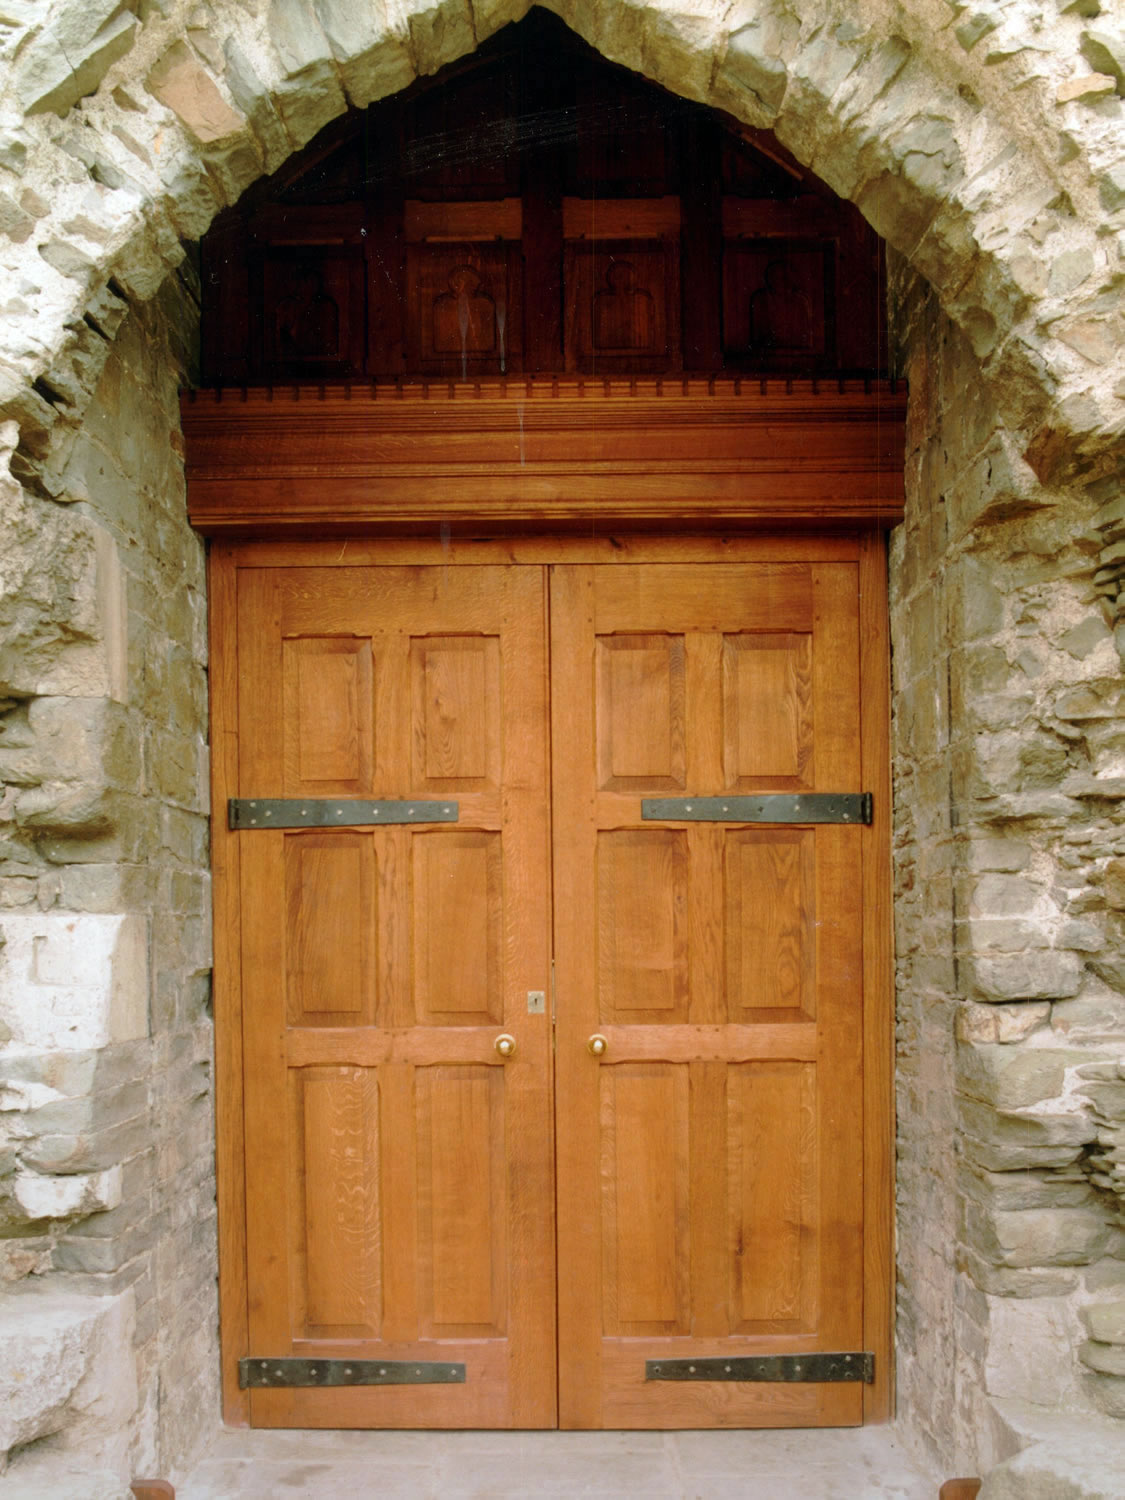 Large pair of solid oak doors, specially designed for Caerphilly Castle (CADW)